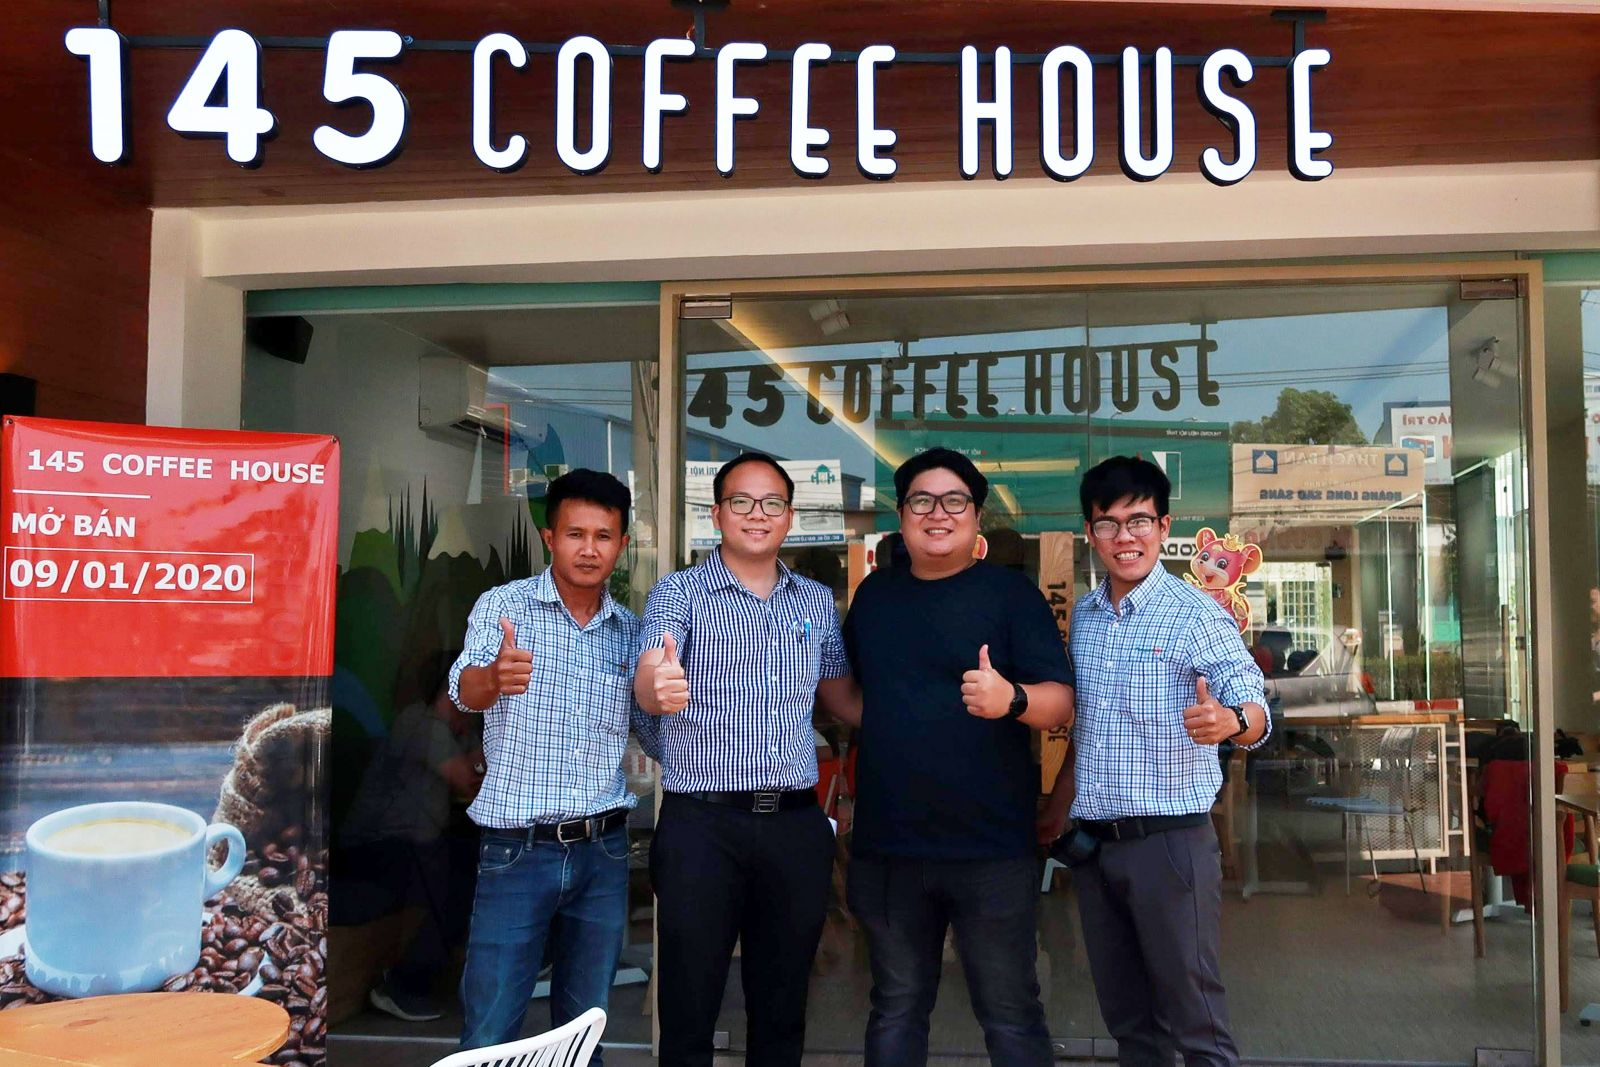 noi-that-quan-cafe-145-coffee-house-binh-duong-4